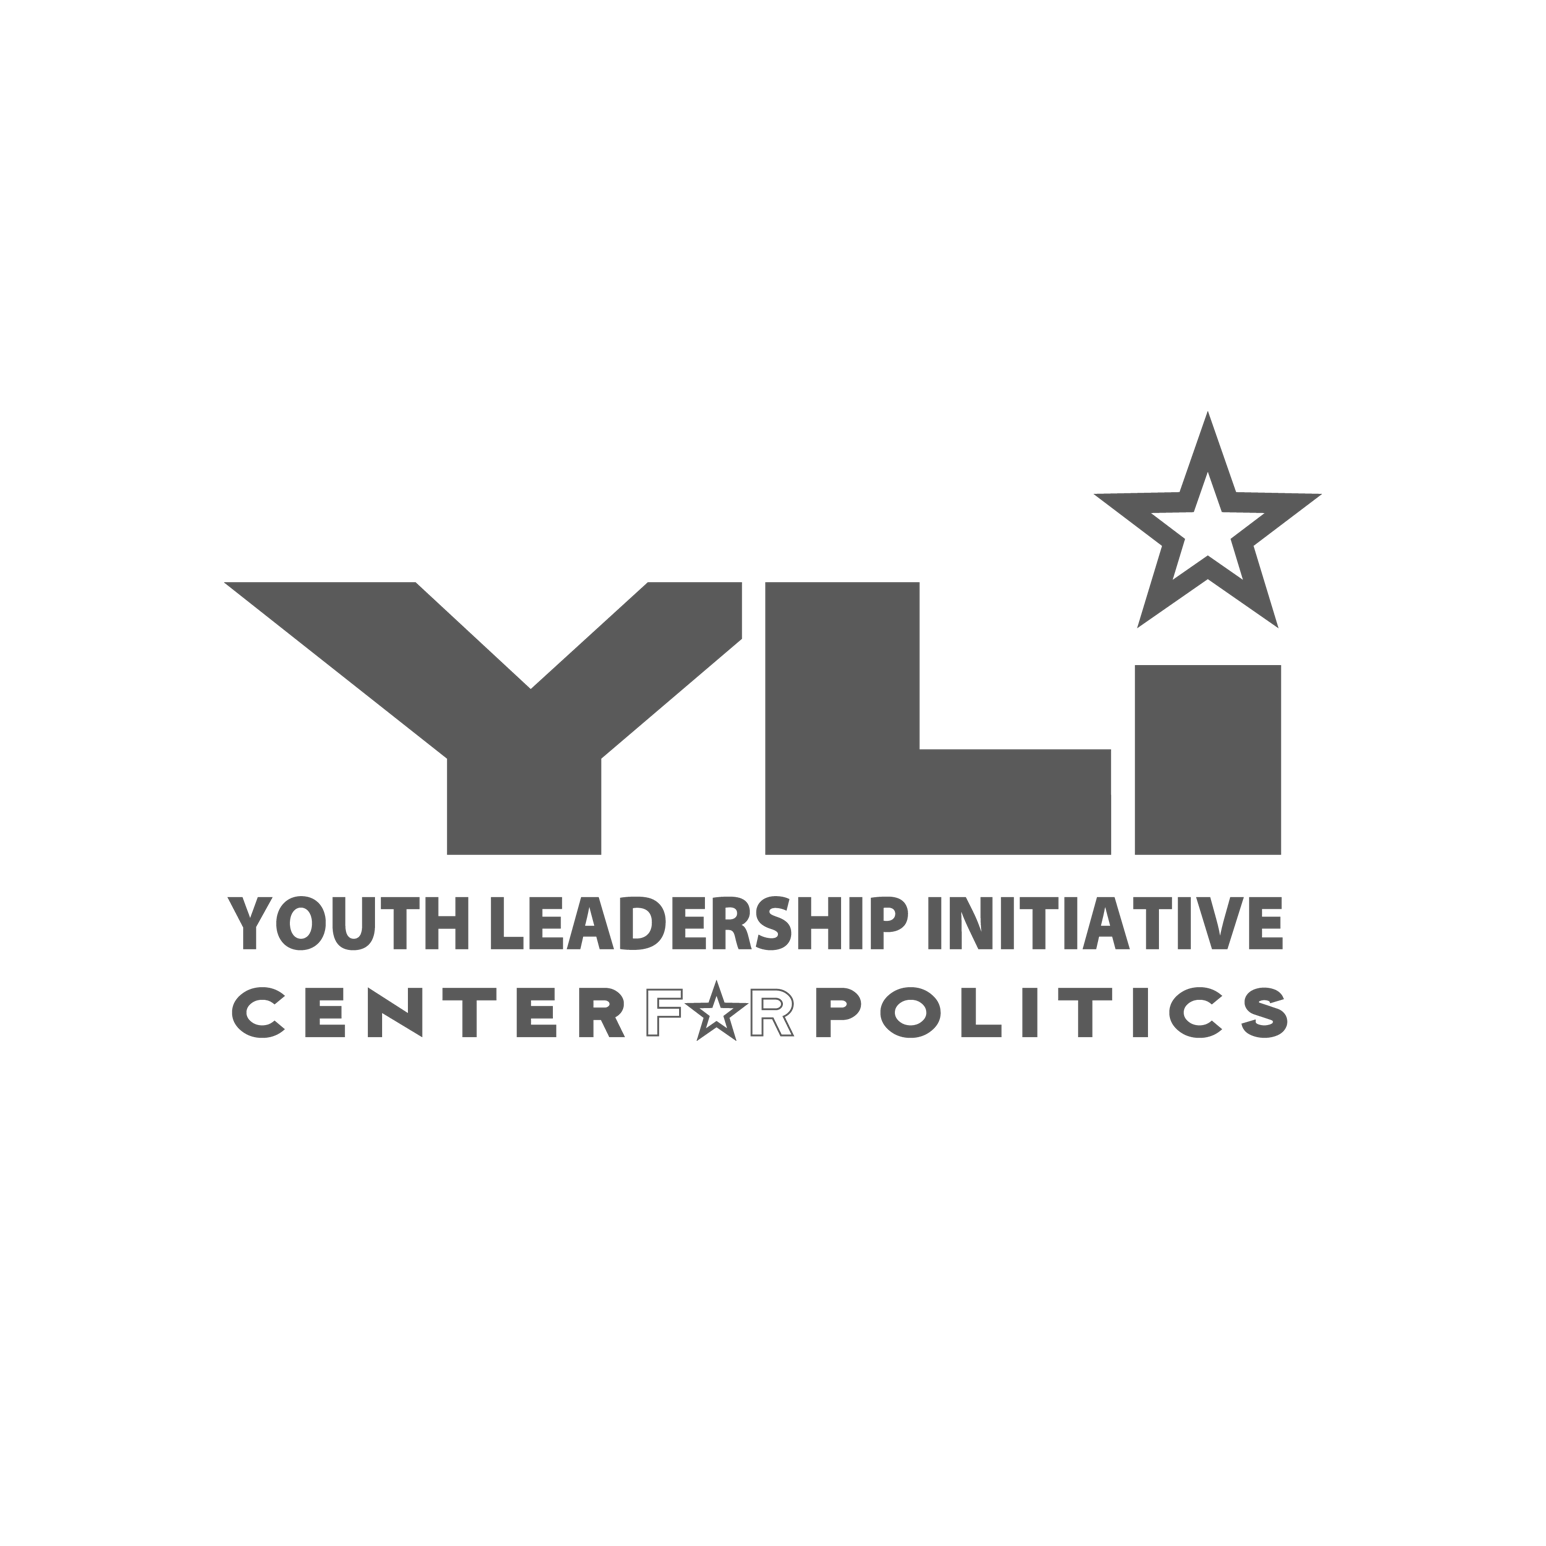 Youth Leadership Initiative